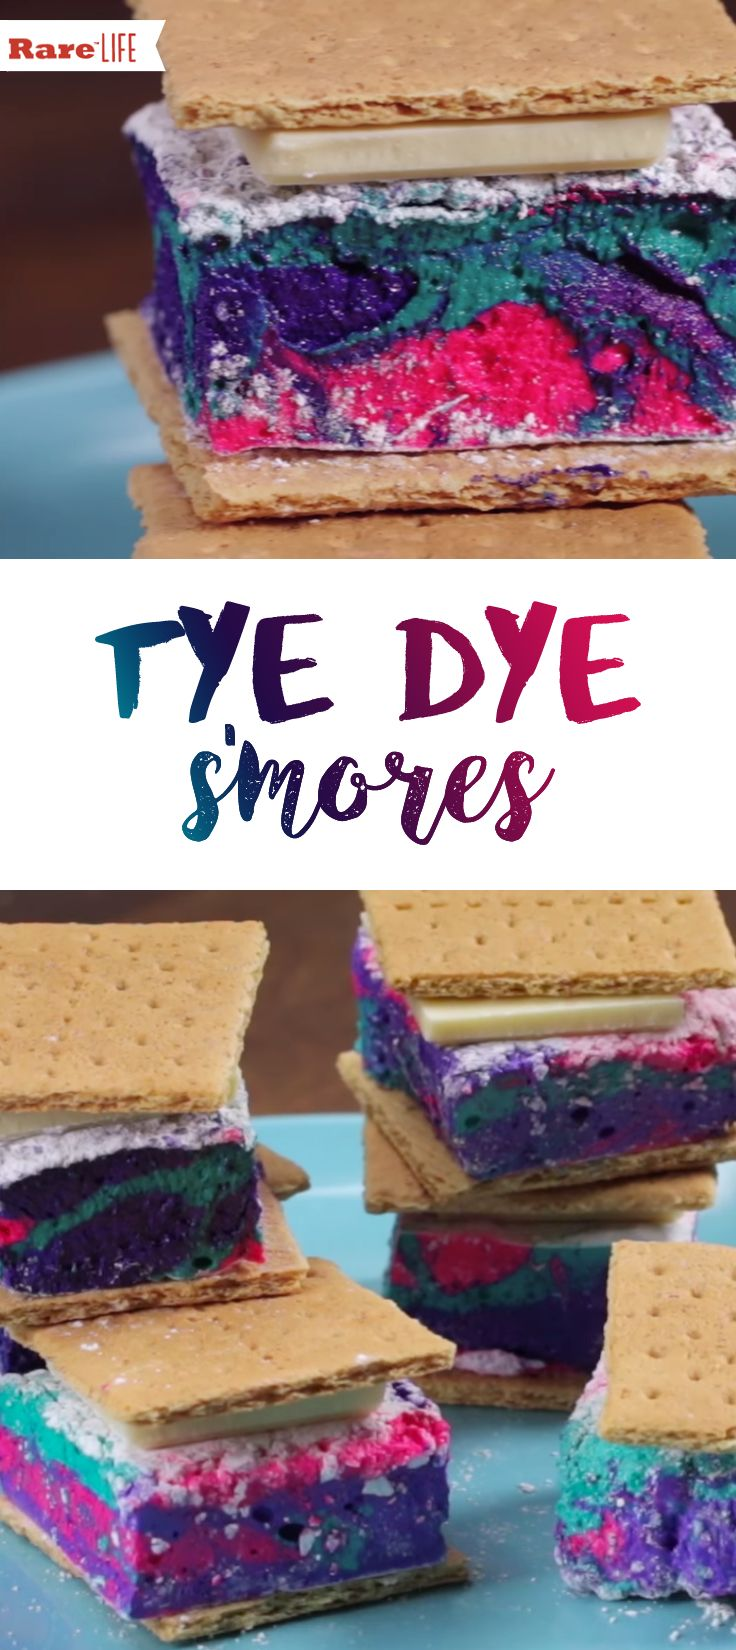 There aren't many things better than the simple joy of a s'more. But what if you could give the classic recipe a little upgrade?